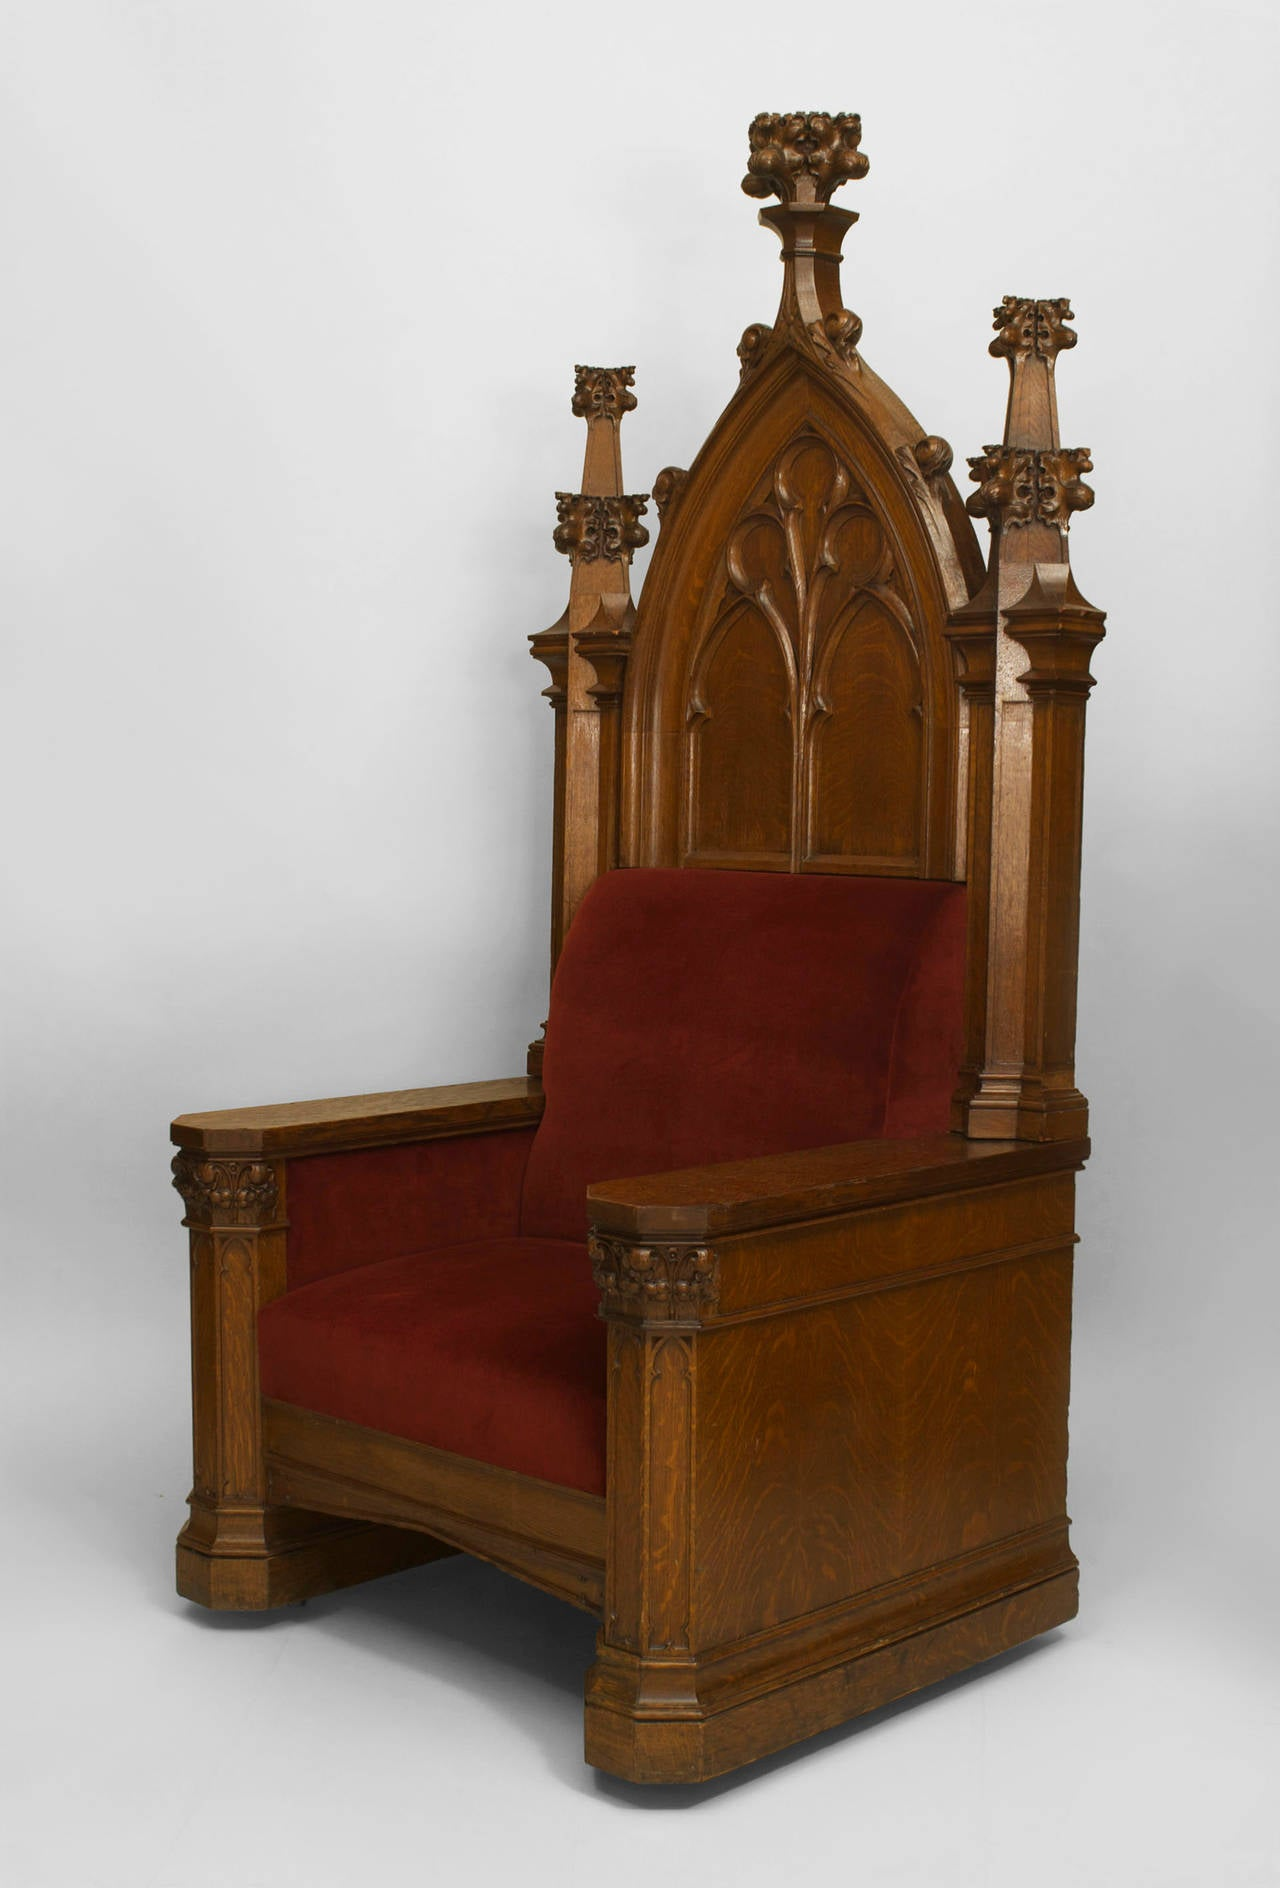 Oversized Turn Of The Century English Gothic Revival Throne At 1stdibs